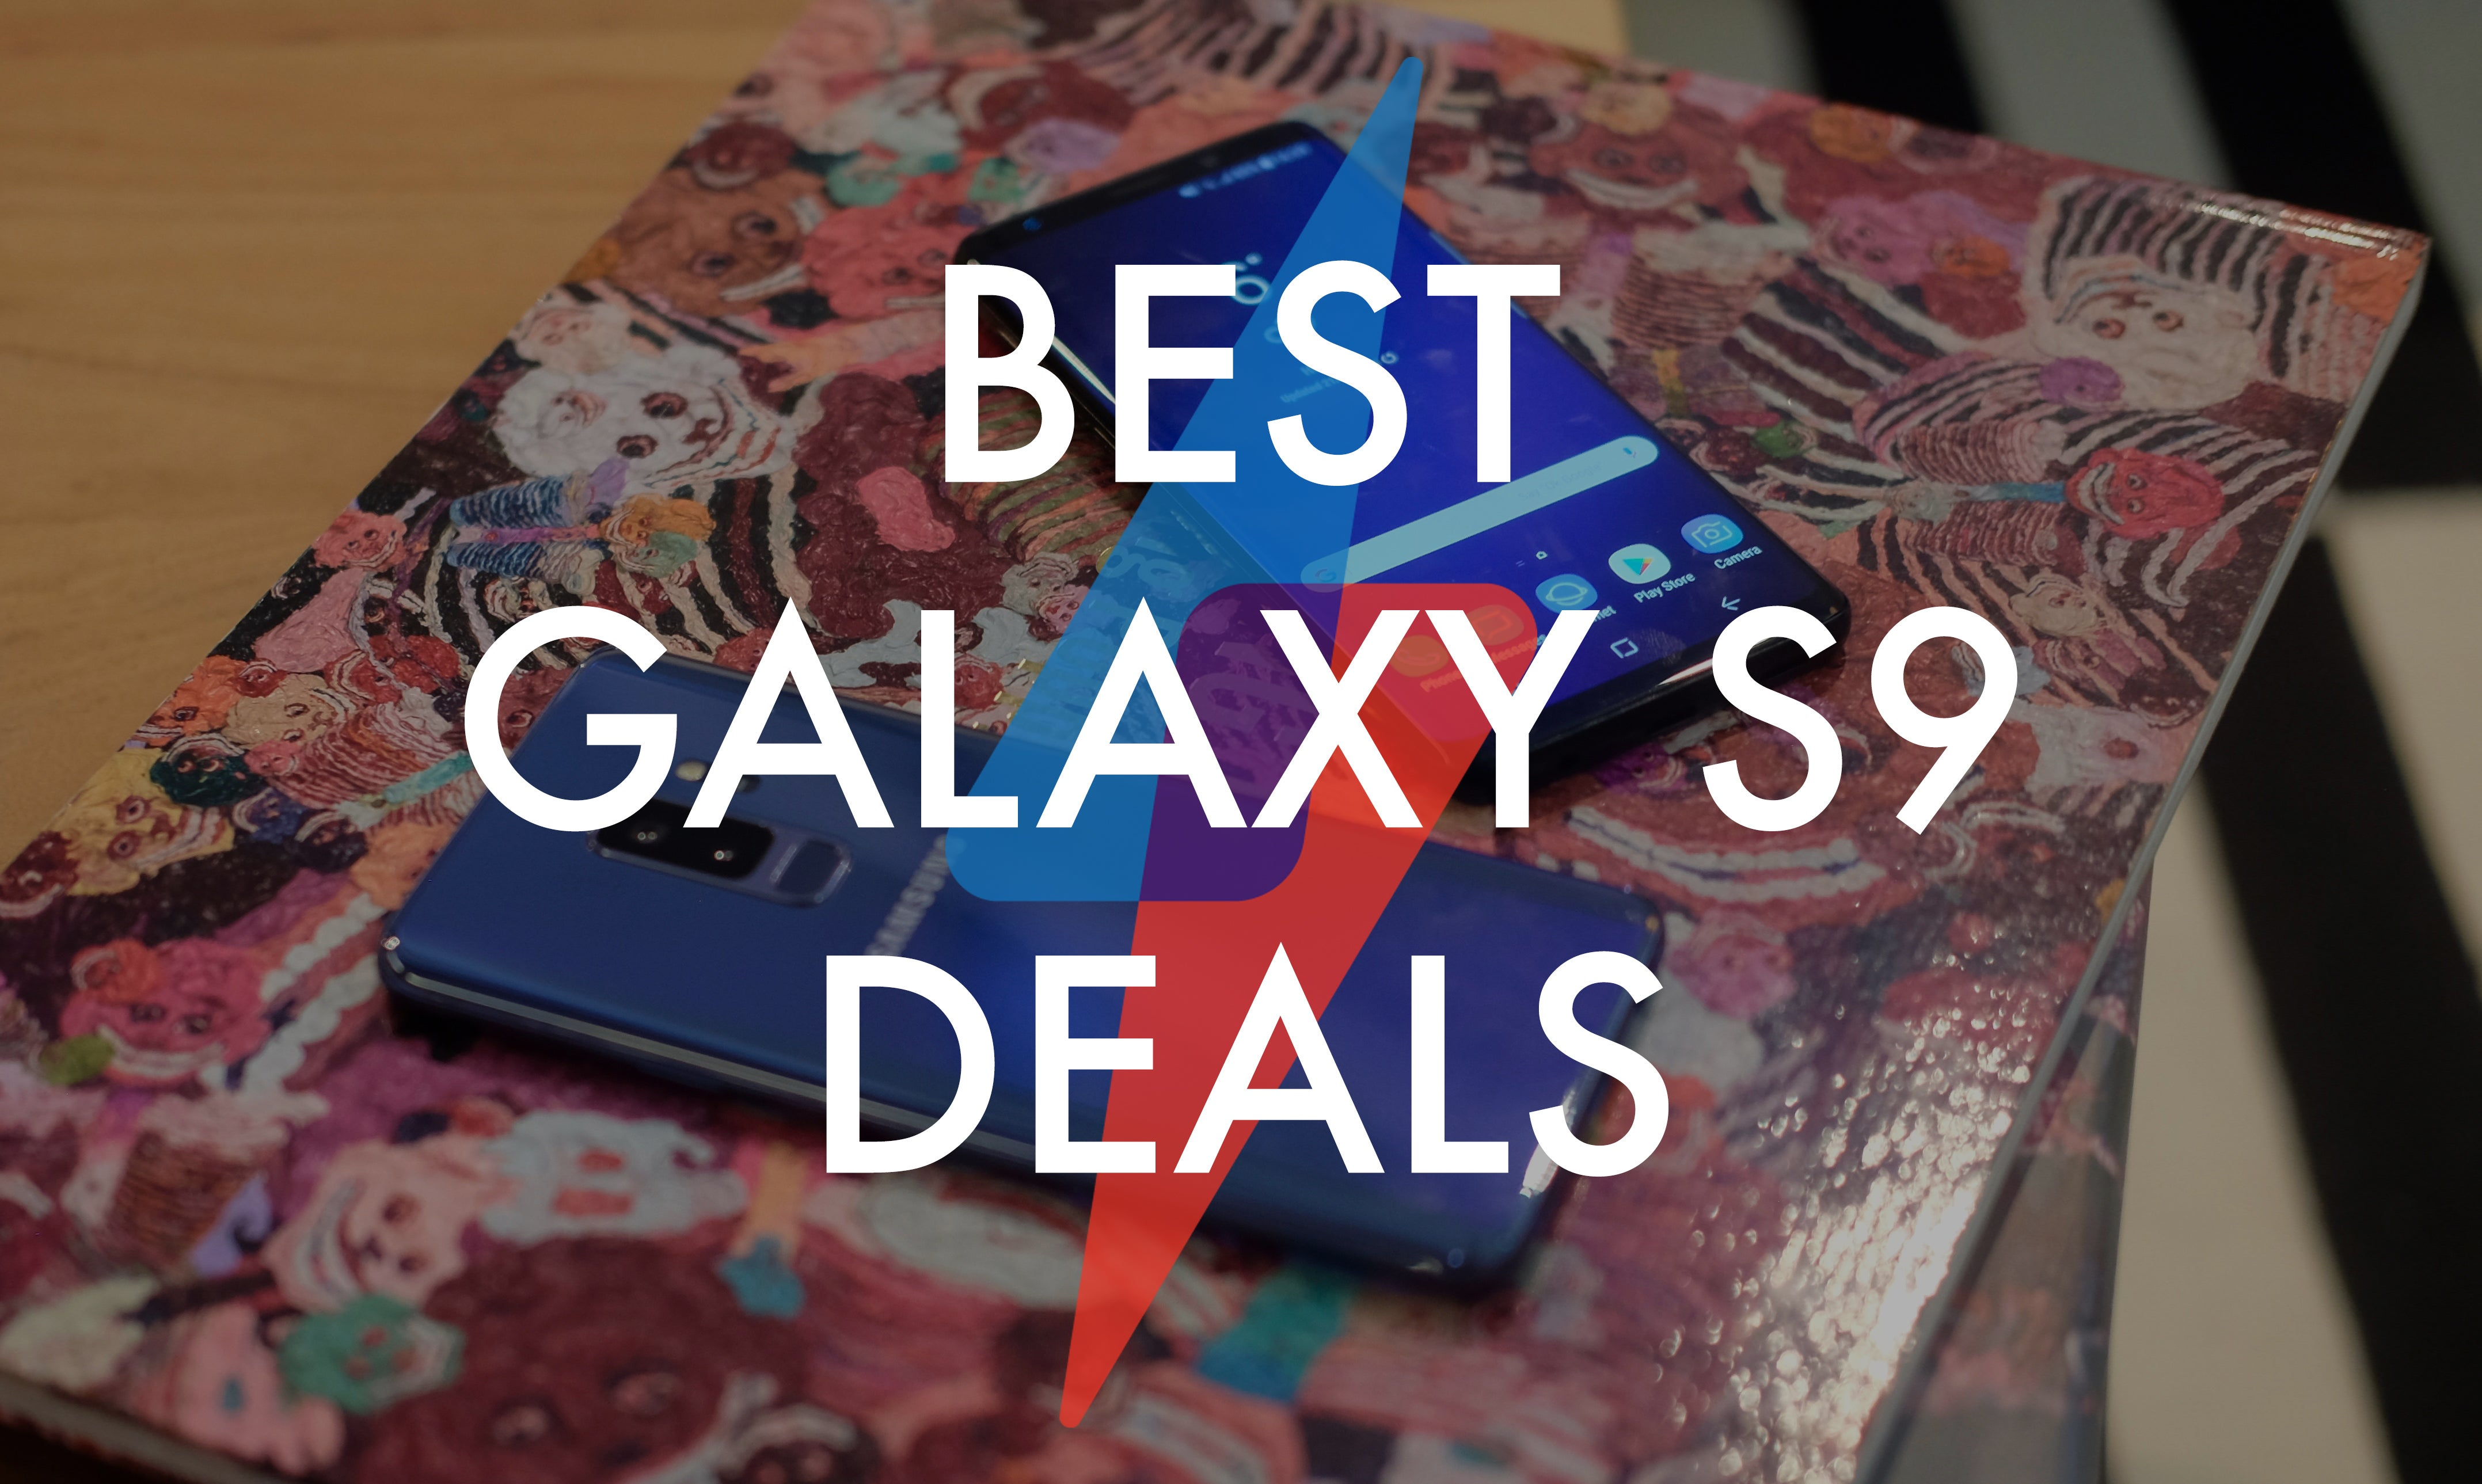 Best Galaxy S9 Deals: Unmissable contract offers with extra £100 off | Trusted Reviews